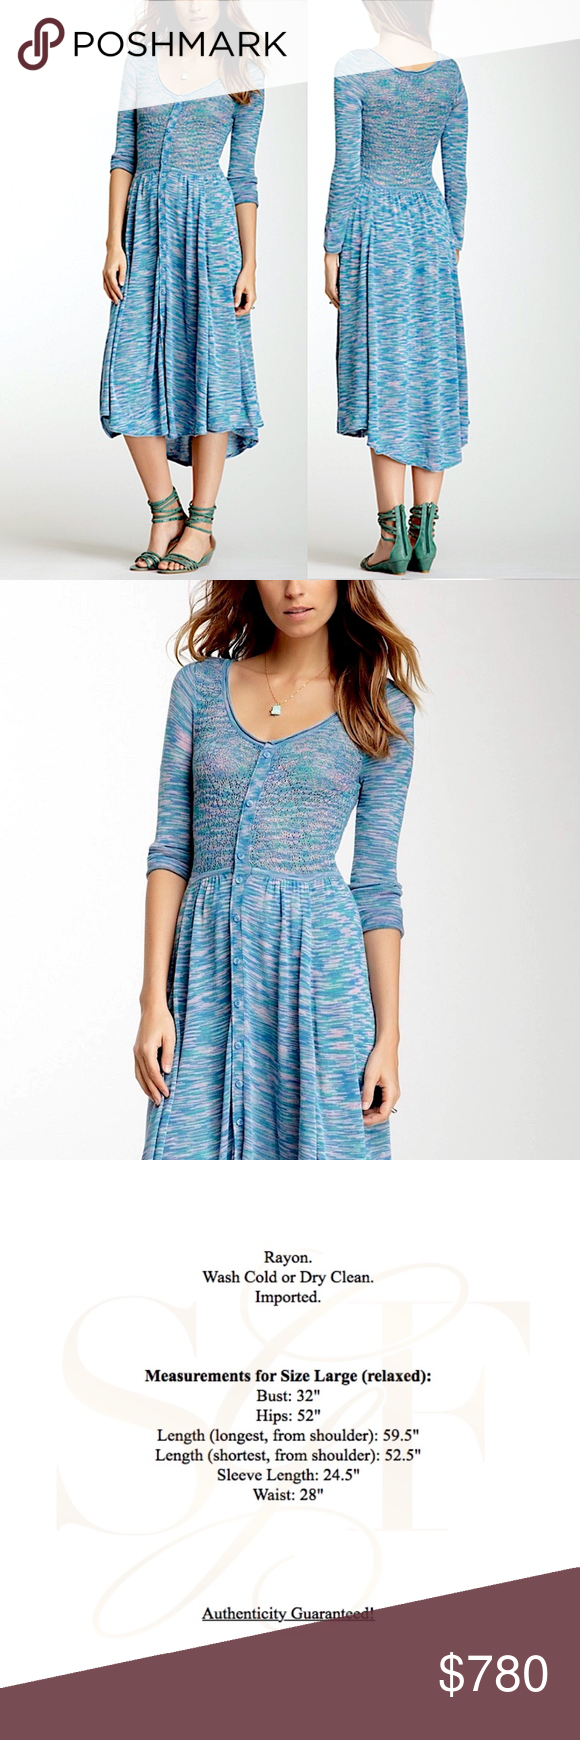 Free people woven dress intricate draped maxi gown nwt pinterest